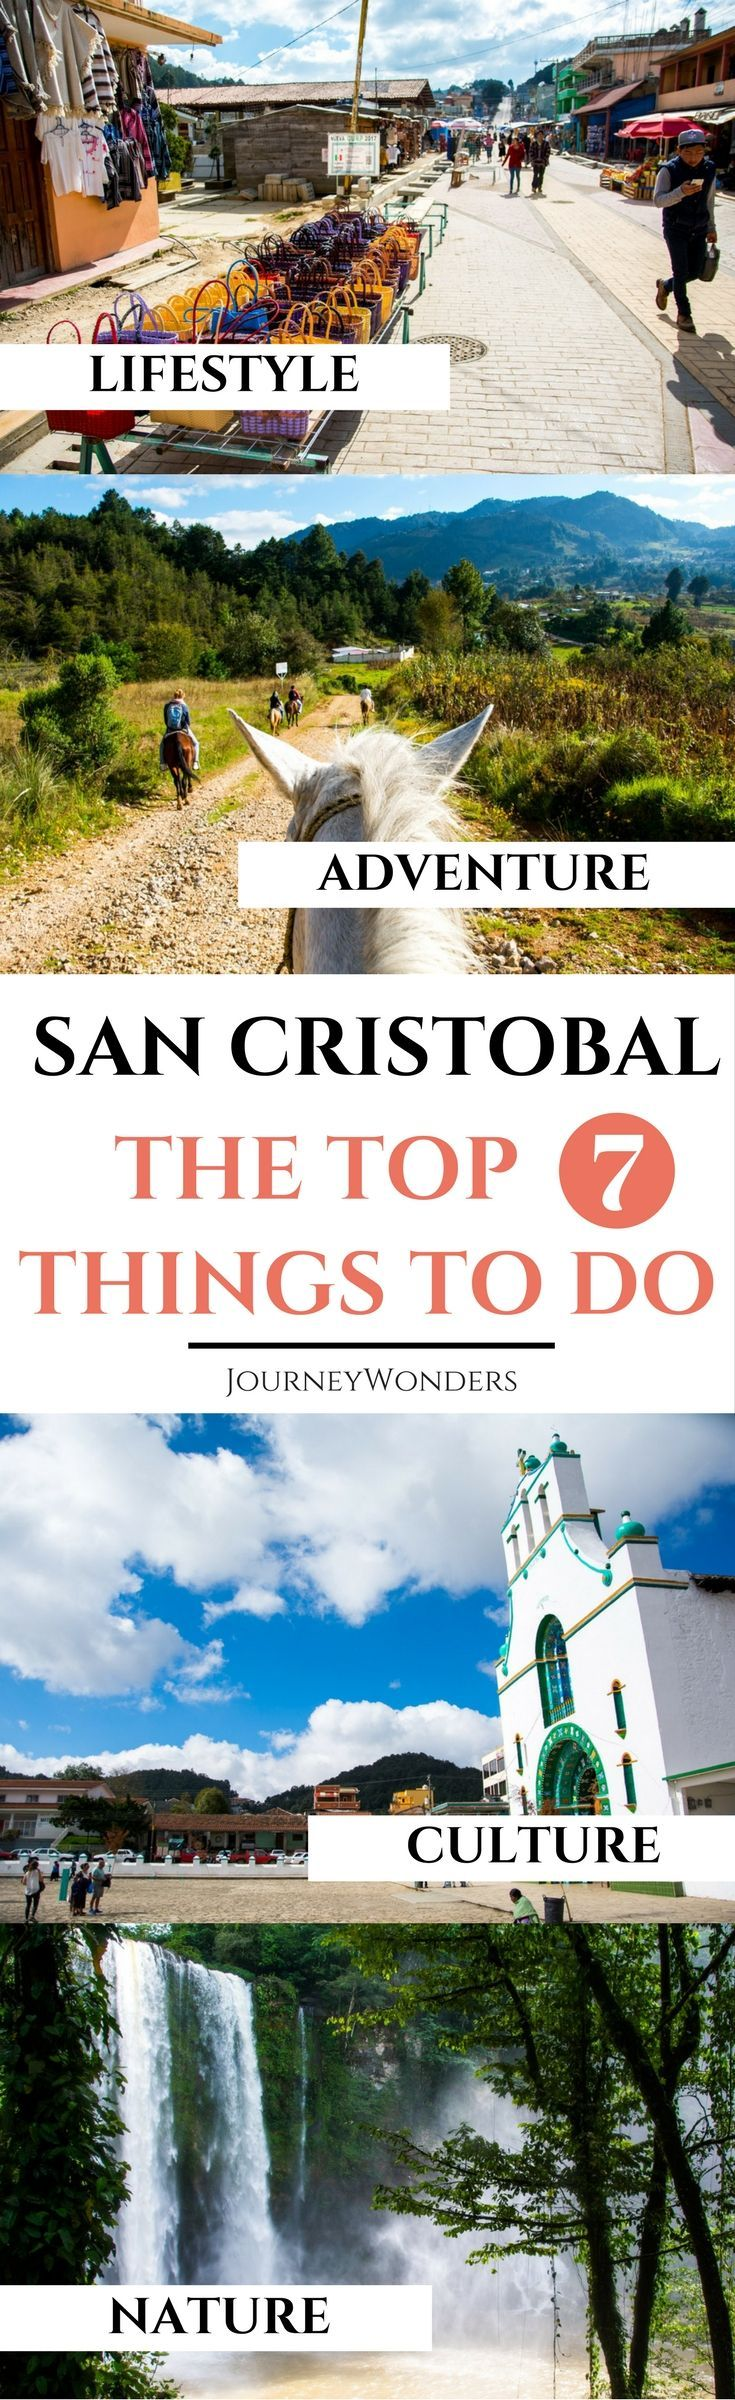 When it comes to things to do in San Cristobal de las Casas, trust me when I say that you will never be disappointed; whether you favor adventure, culture, nature or shopping, you will find all of that and more in the crown jewel of Mexico's magical towns. Ready to explore it? #Chiapas #Mexico #Palenque #SanCristobaldelasCasas via @journeywonders